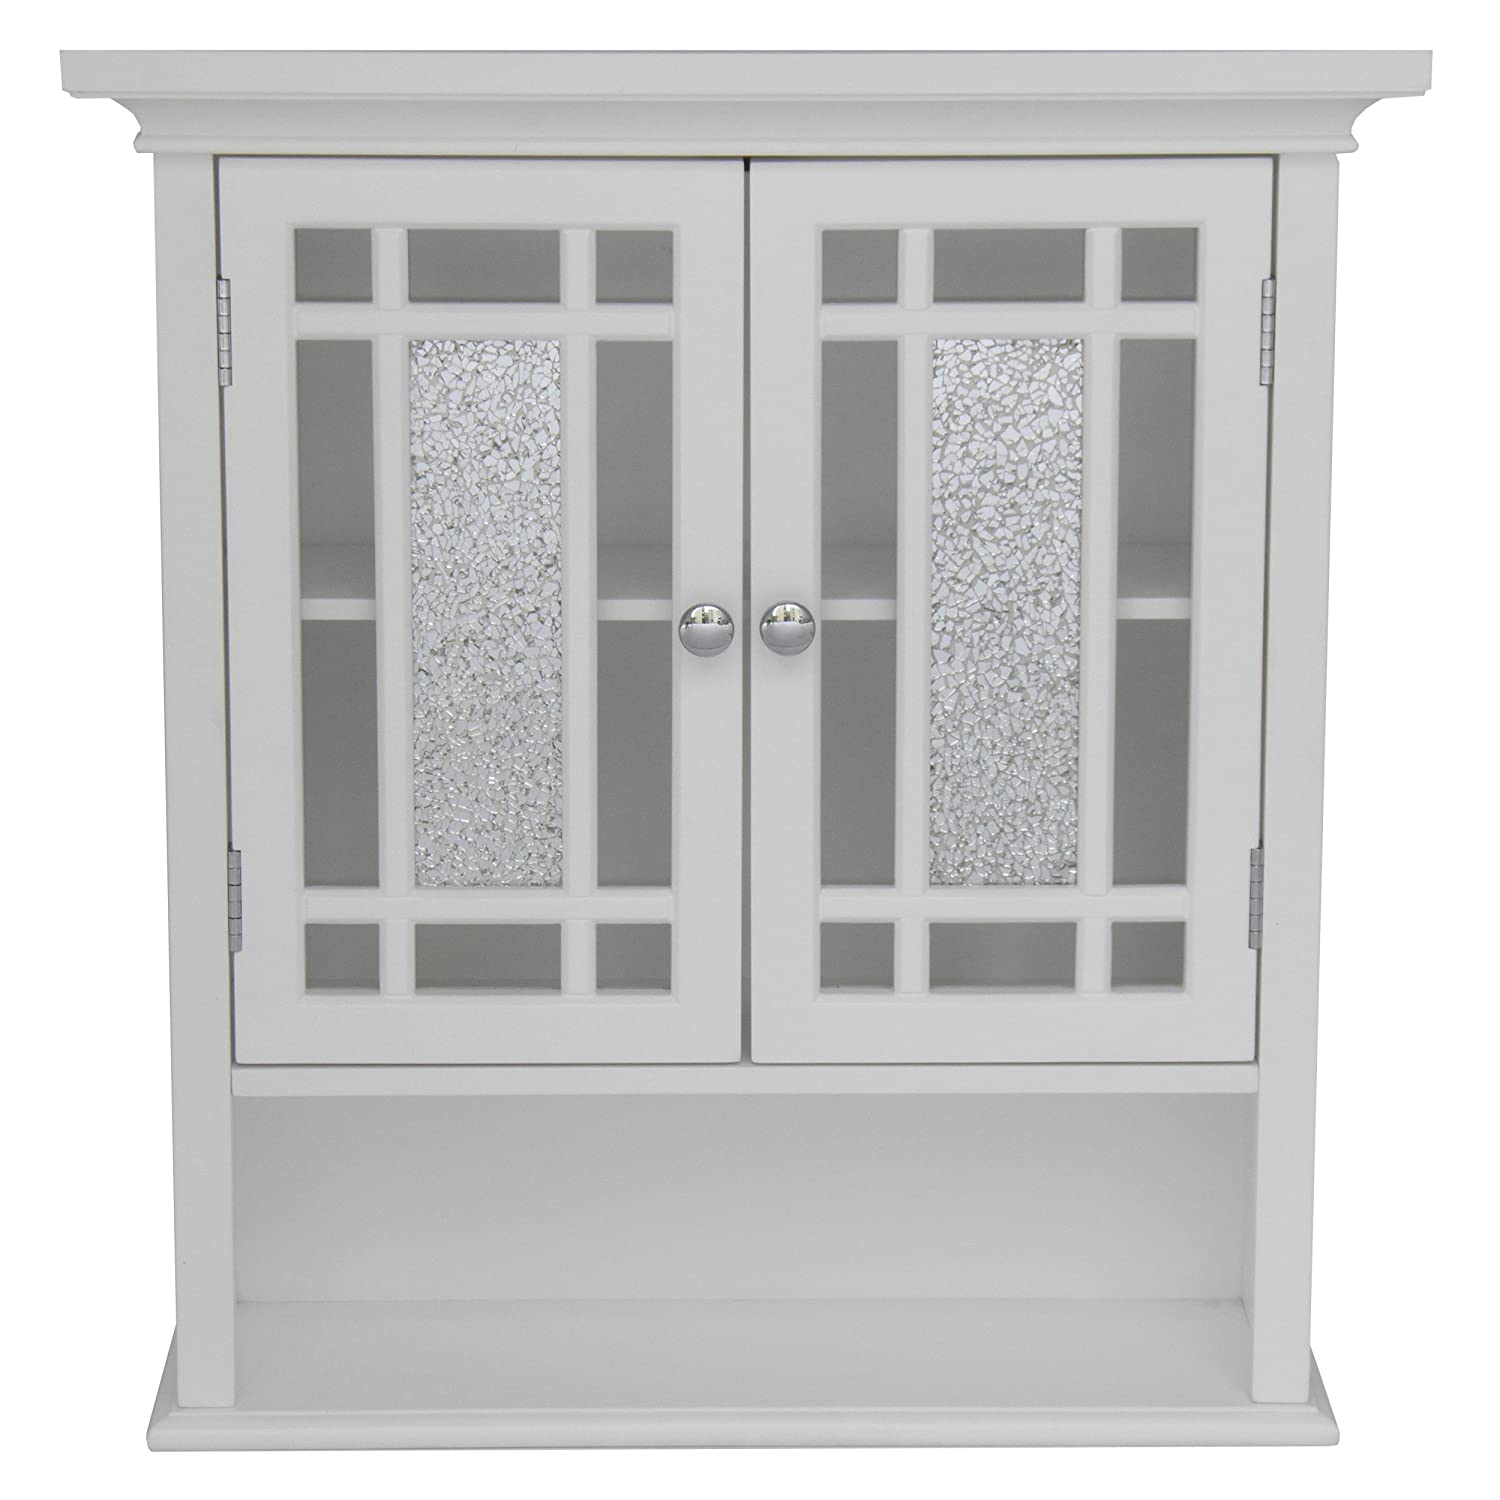 Merveilleux Amazon.com: Elegant Home Fashions ELG 527 Whitney Wall Cabinet With 2 Doors  And 1 Shelf: Kitchen U0026 Dining